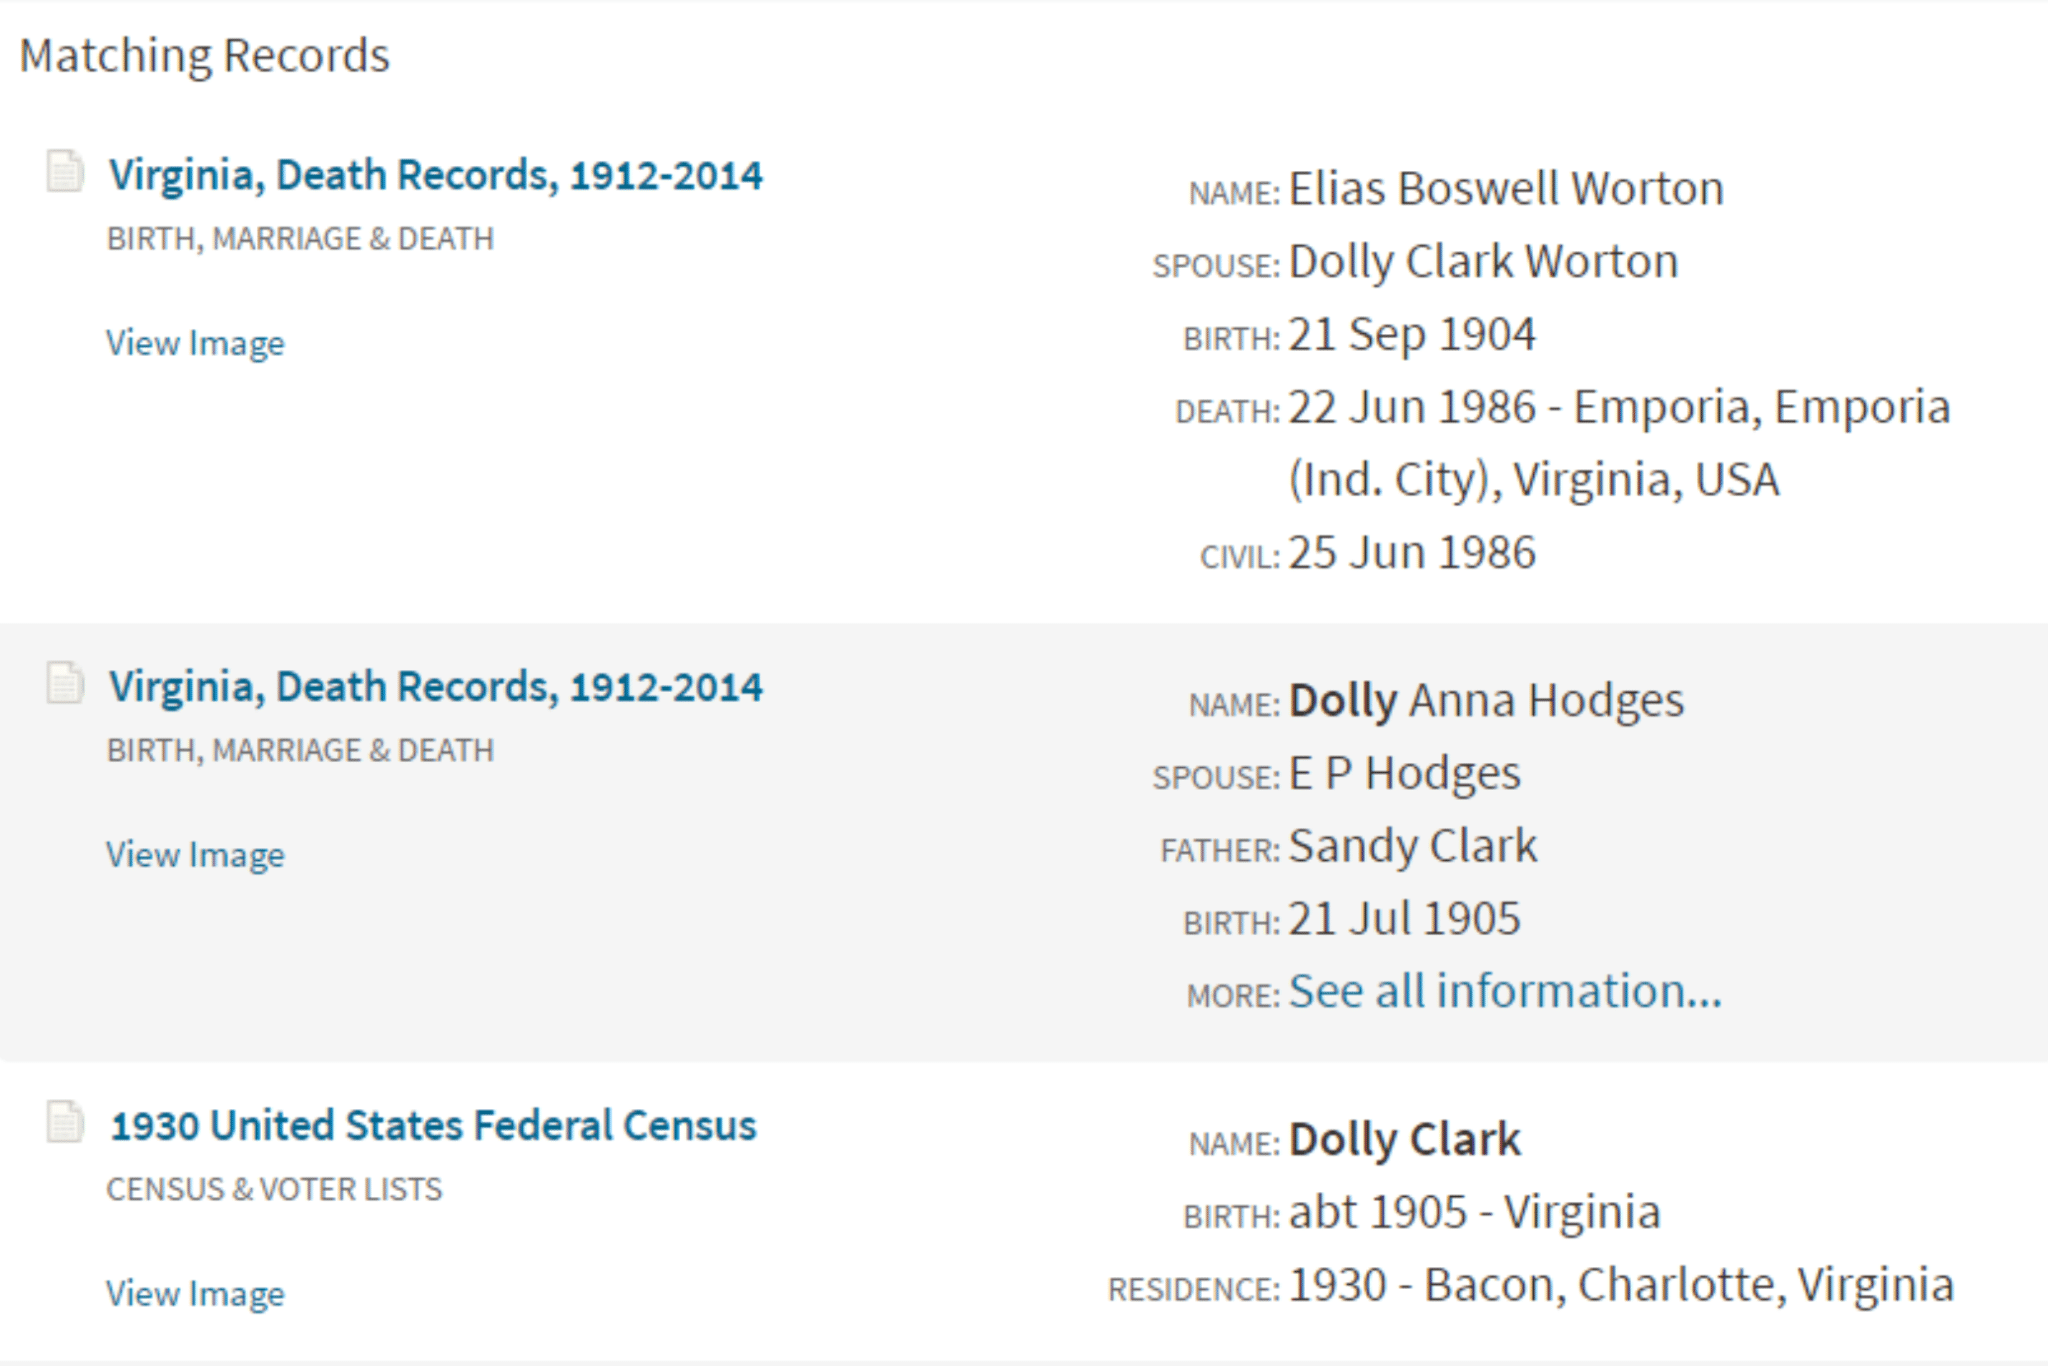 Ancestry Search Results for Dolly Clark